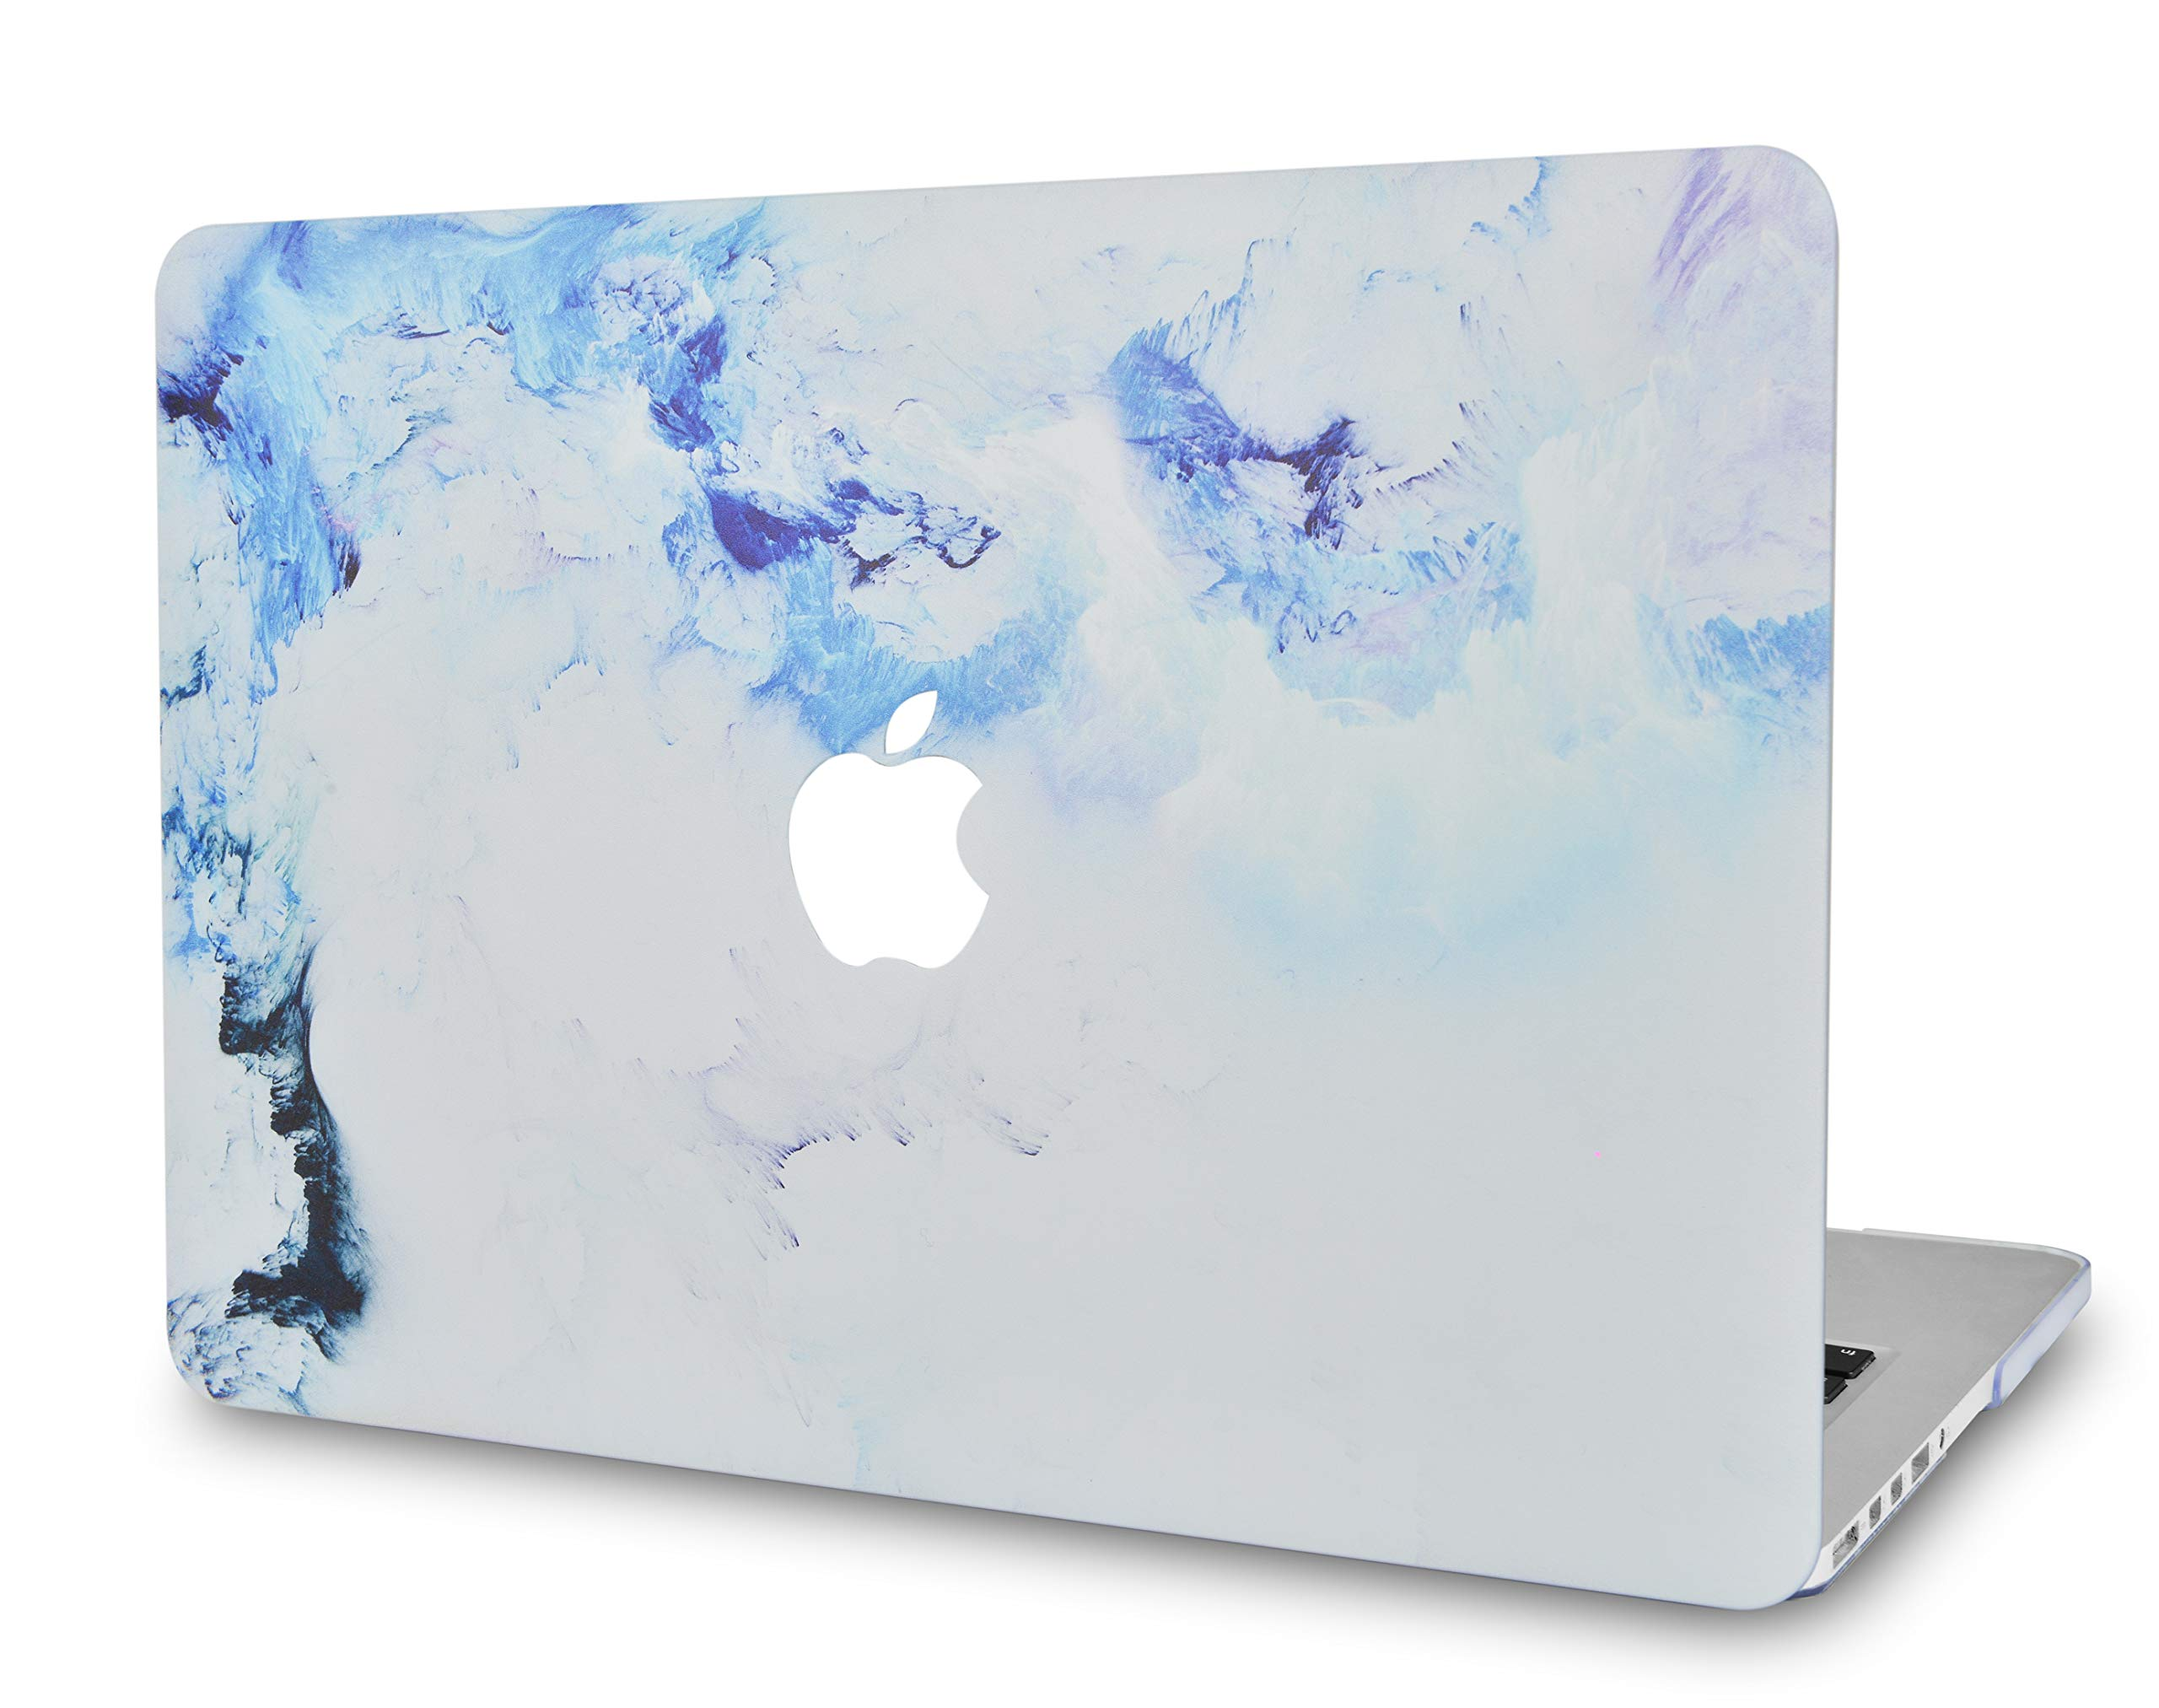 LuvCase Laptop Case for MacBook Air 13 Inch(2020/19/18Release) New Version A1932 with Retina Display (Touch ID)RubberizedPlasticHardShellCover (Blue Cloud Marble)